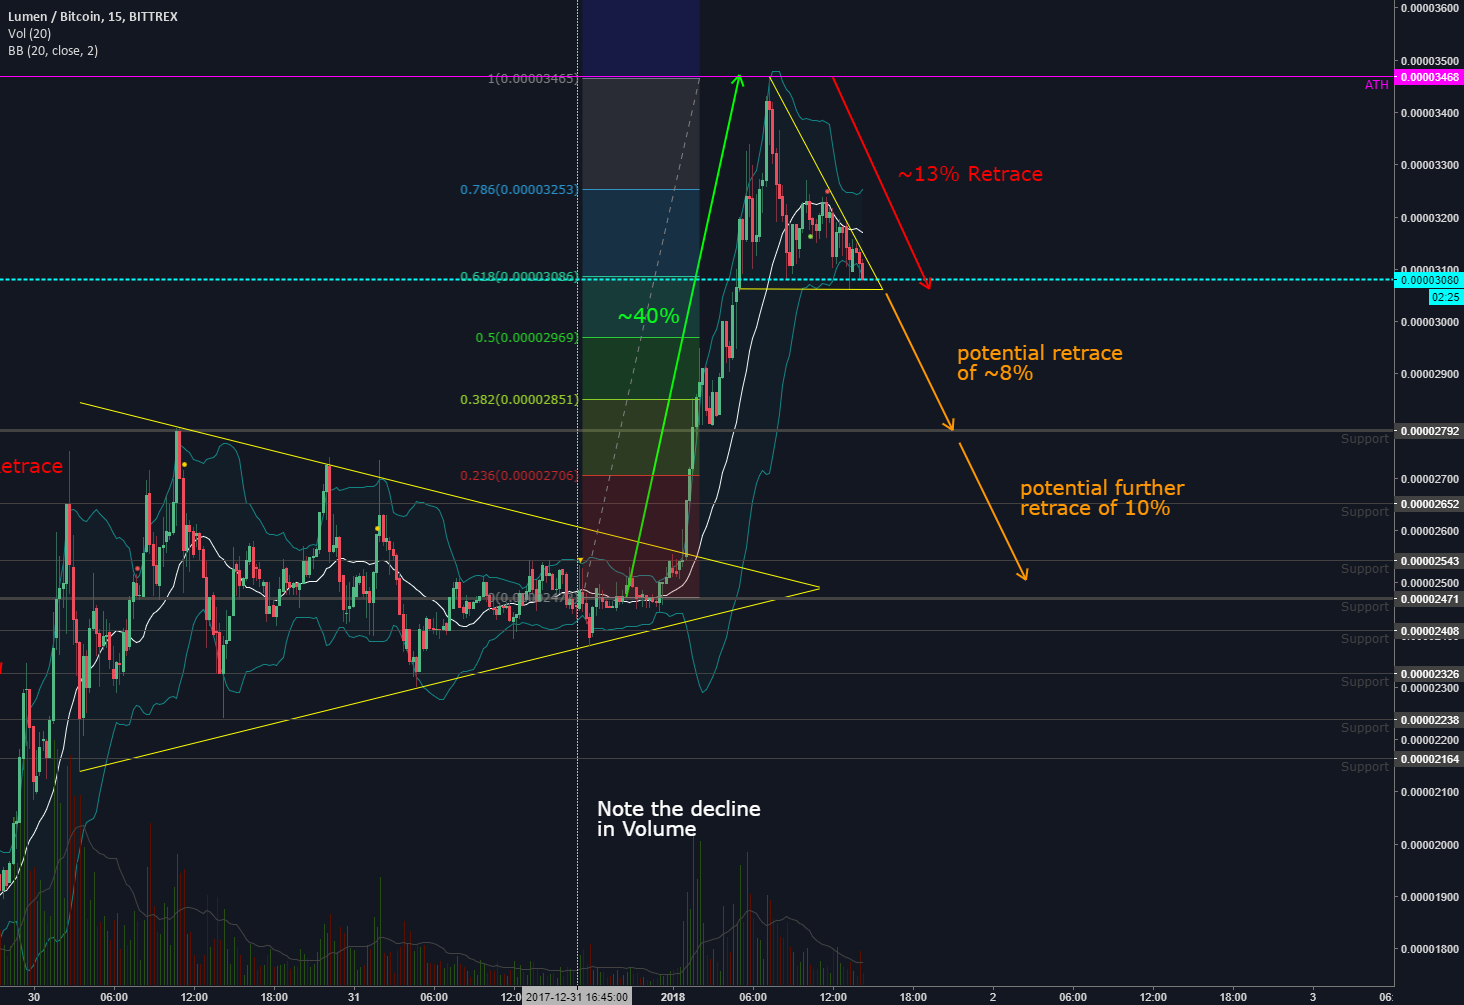 XLM Potential Retrace